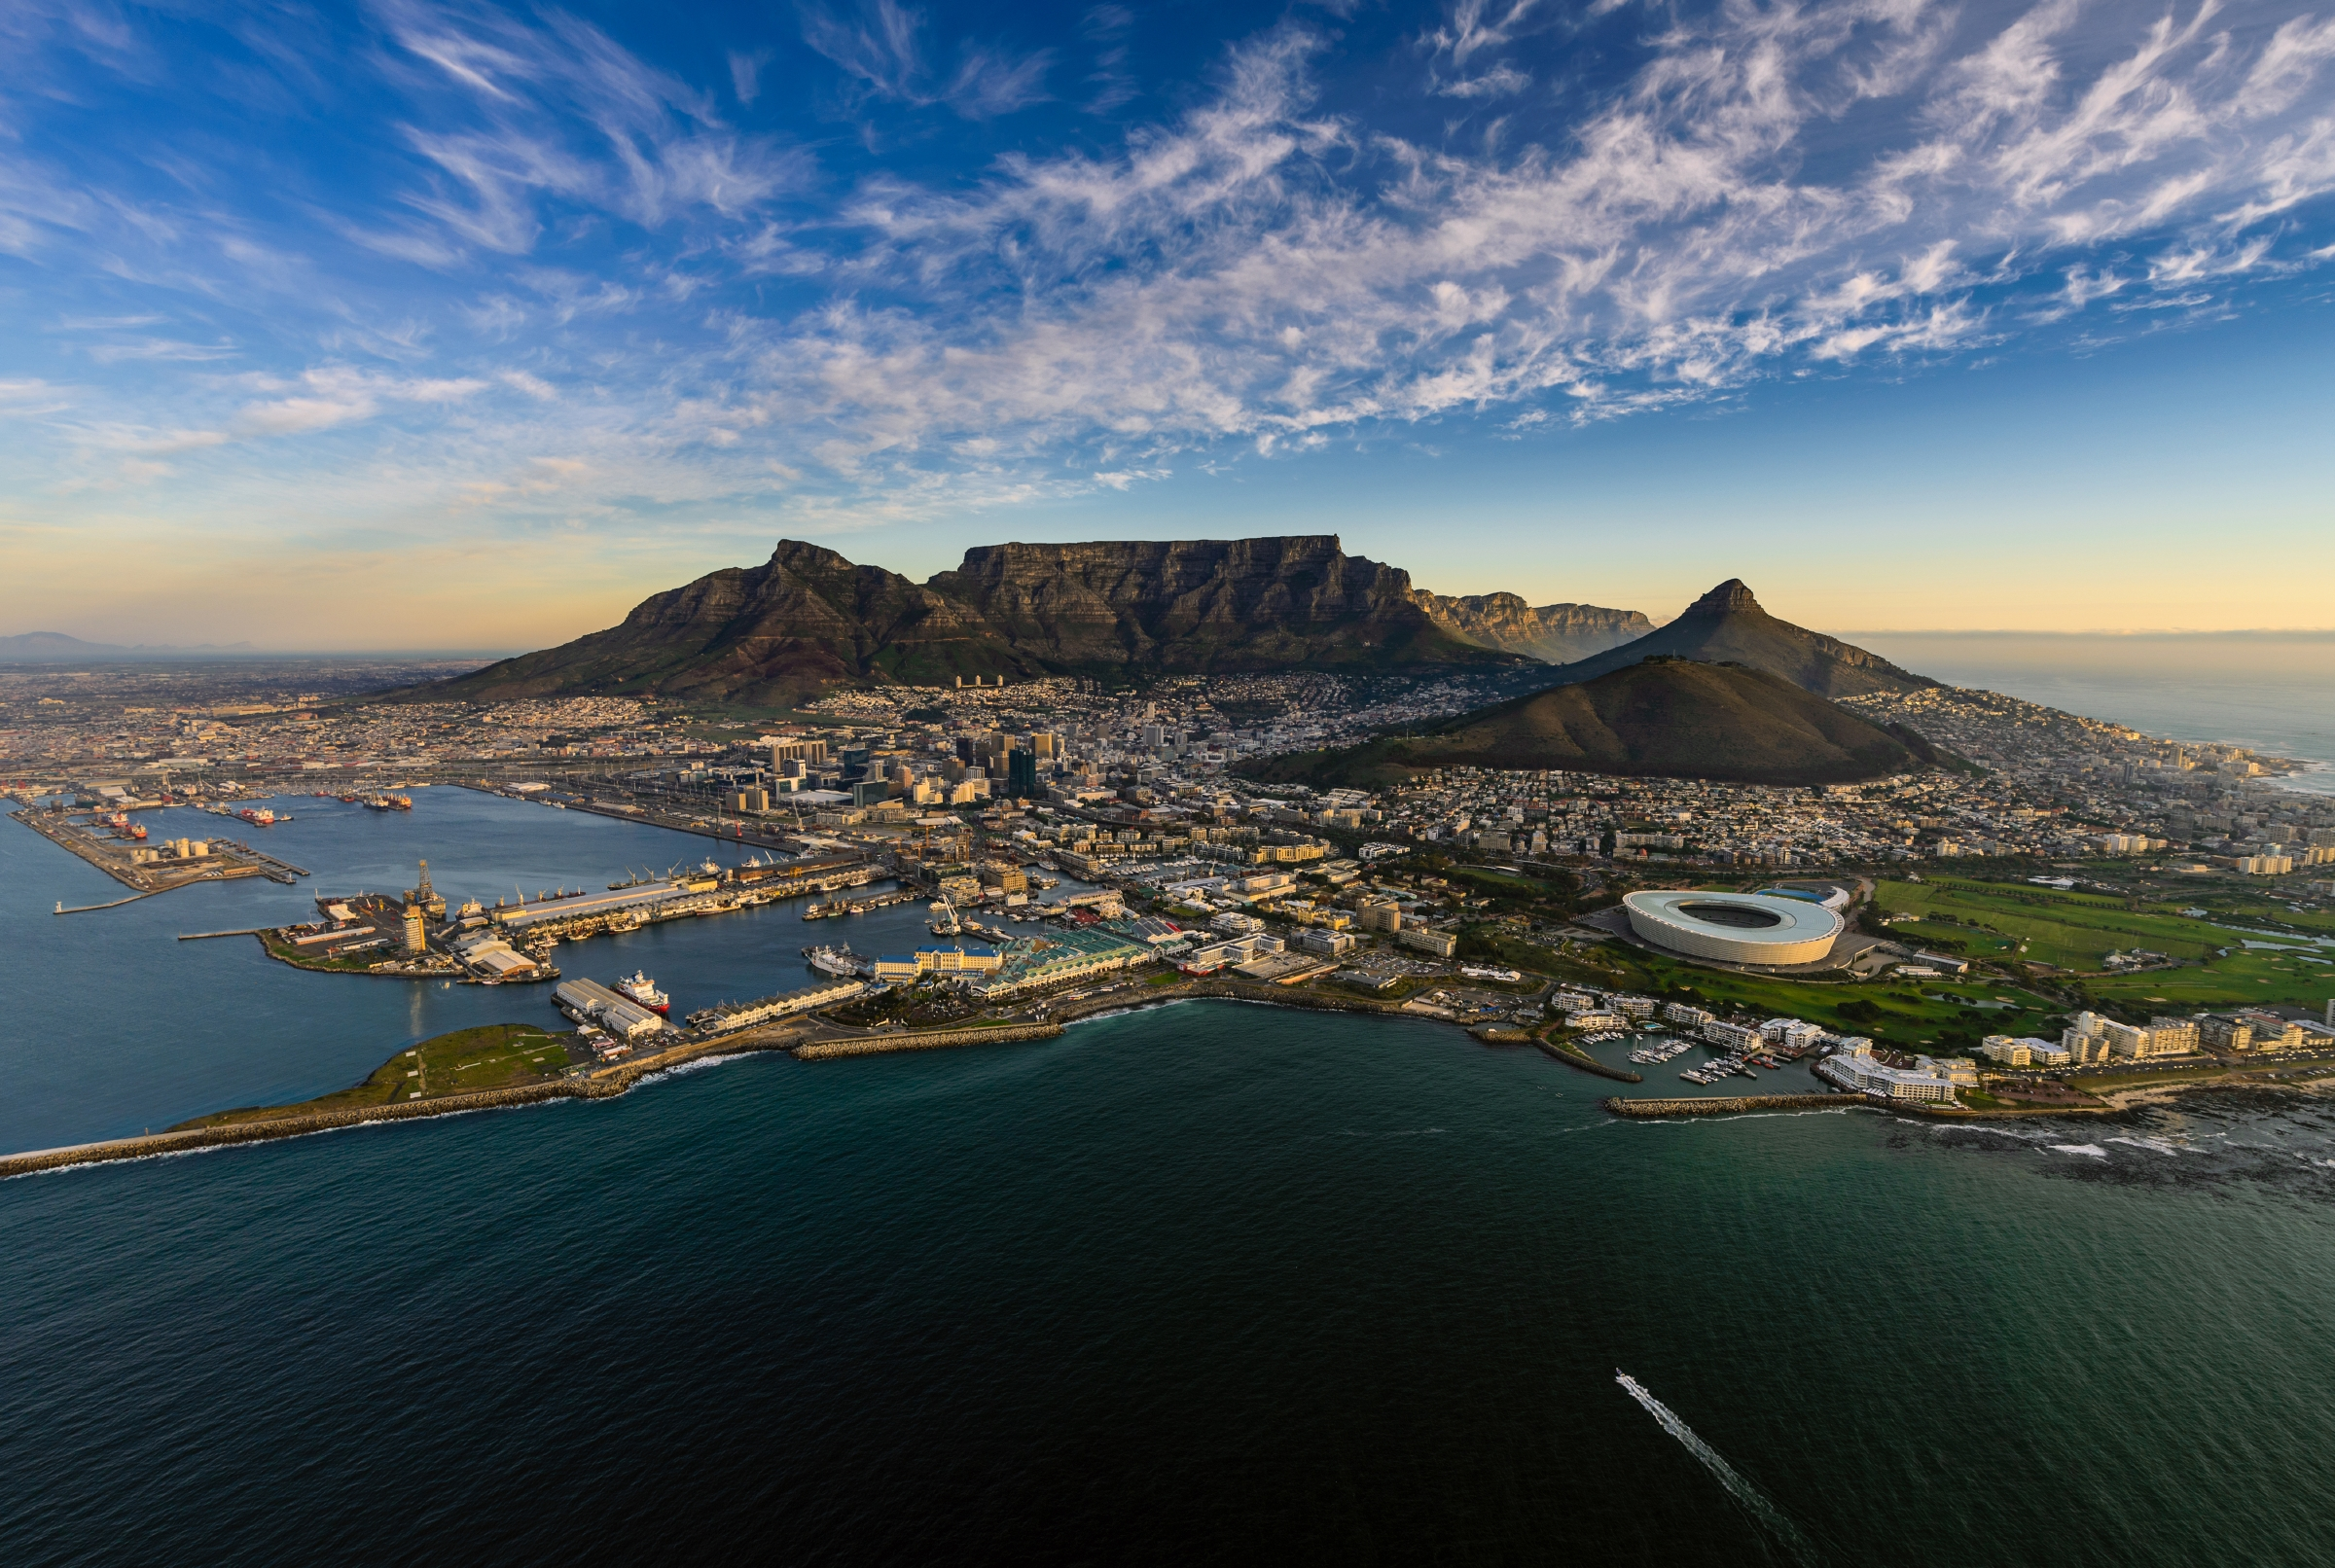 An aerial view of Table Mountain. Image: Alexcpt/Getty Images